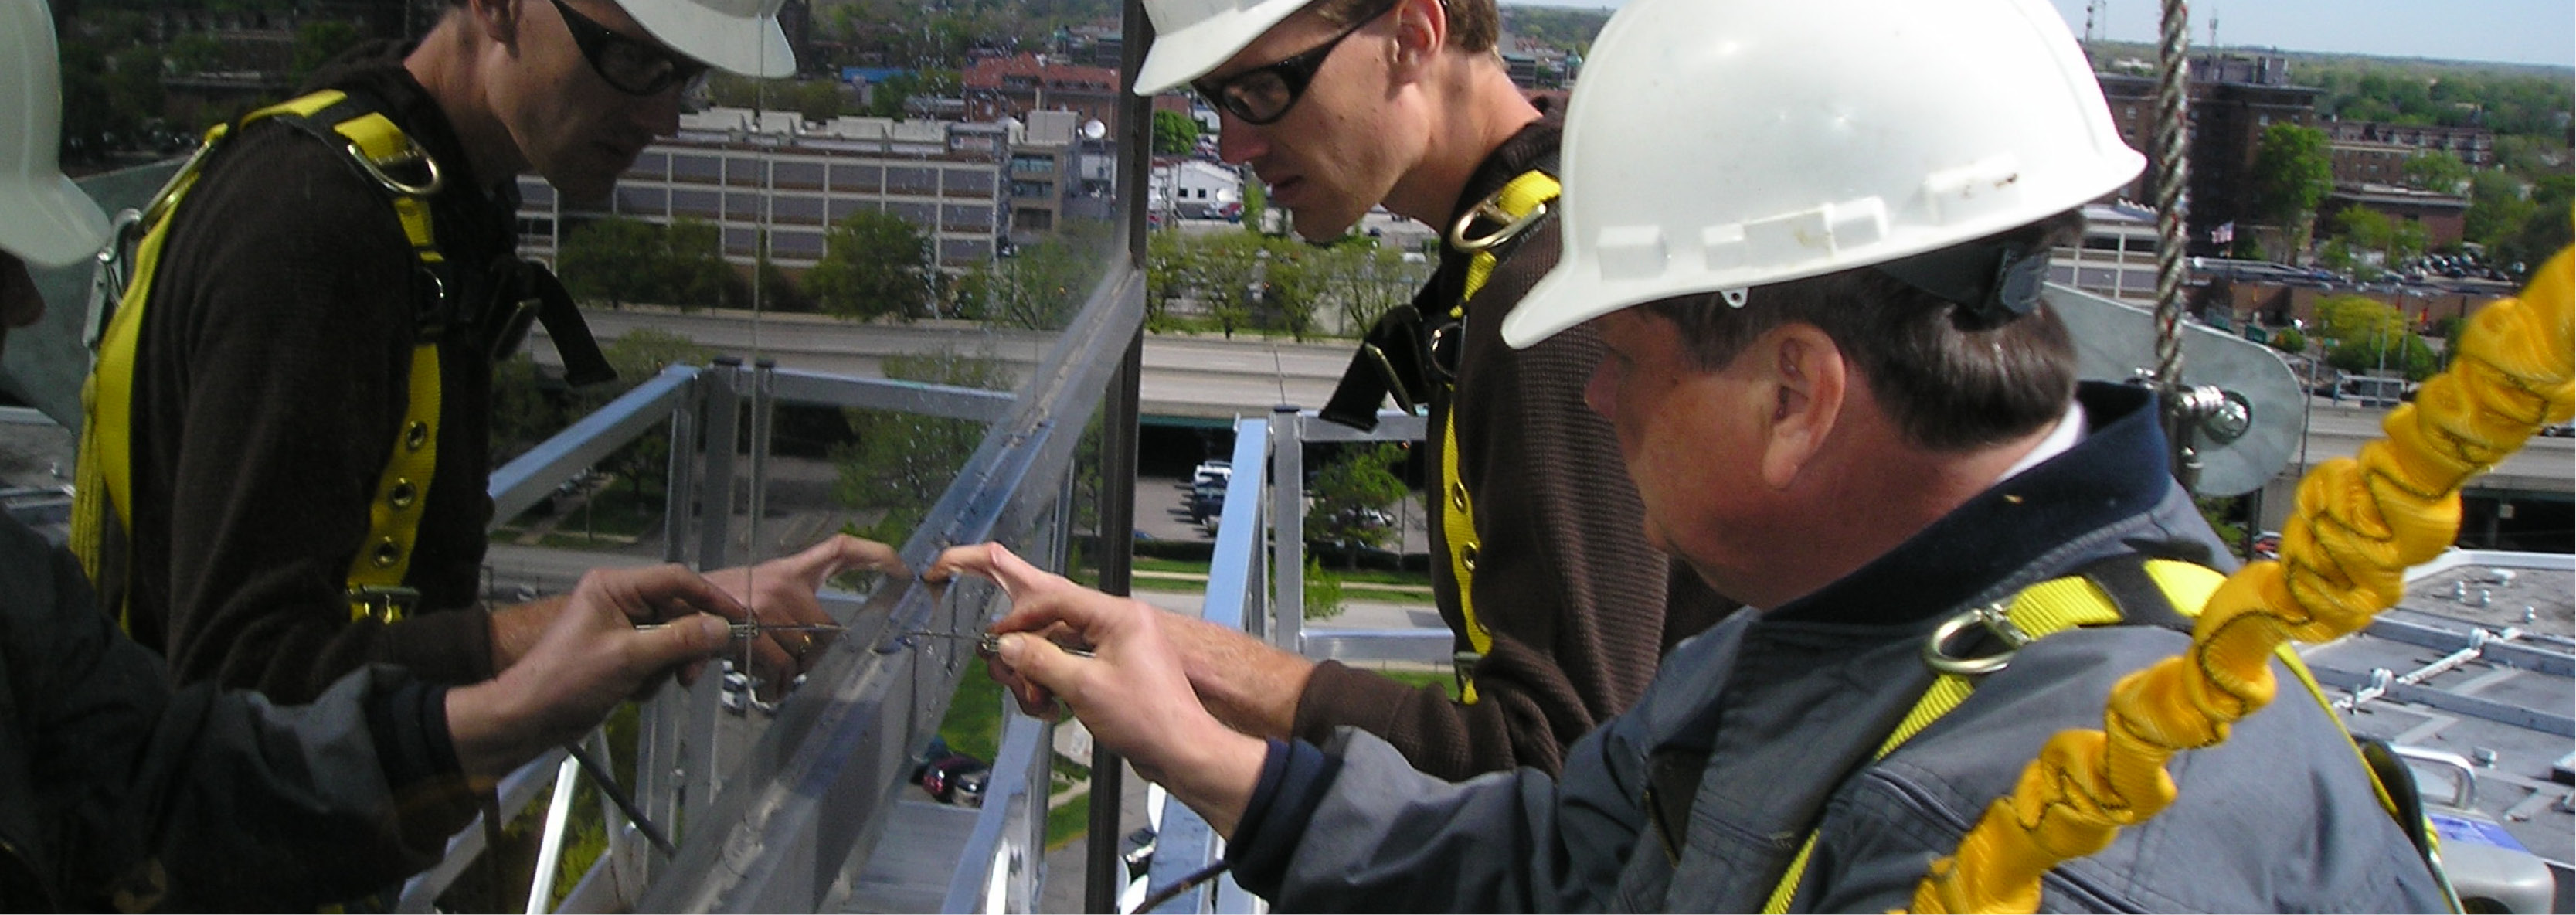 Building Envelope Services